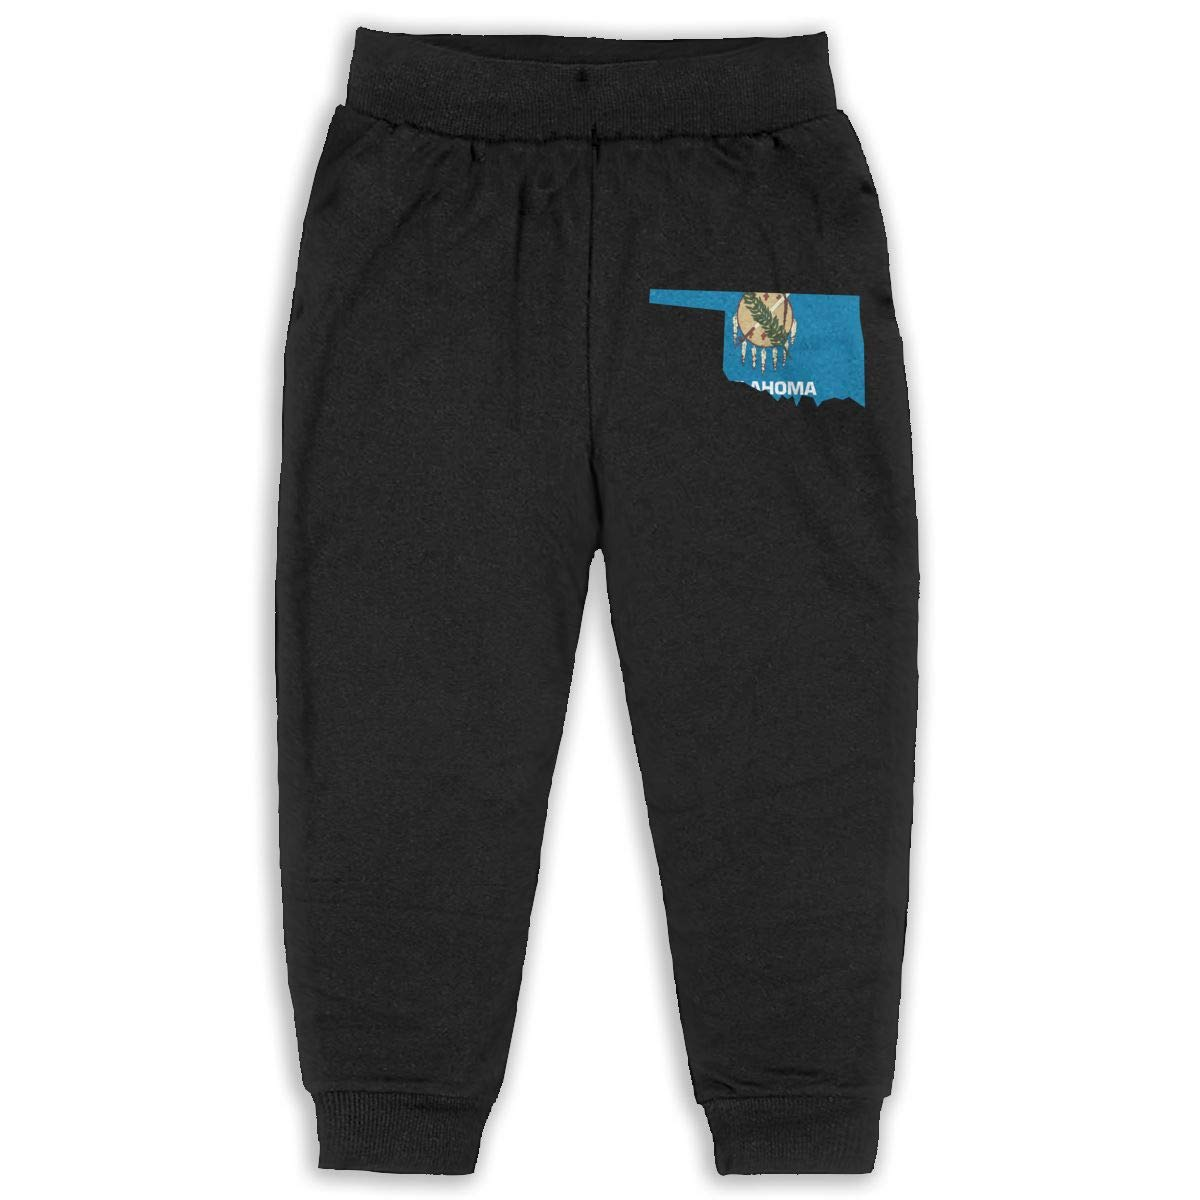 Sizes Youth S-XL Lovely Snoopy Art Print Soft and Sports Joggers Pants Trousers Sweatpants Youth Sweatpants